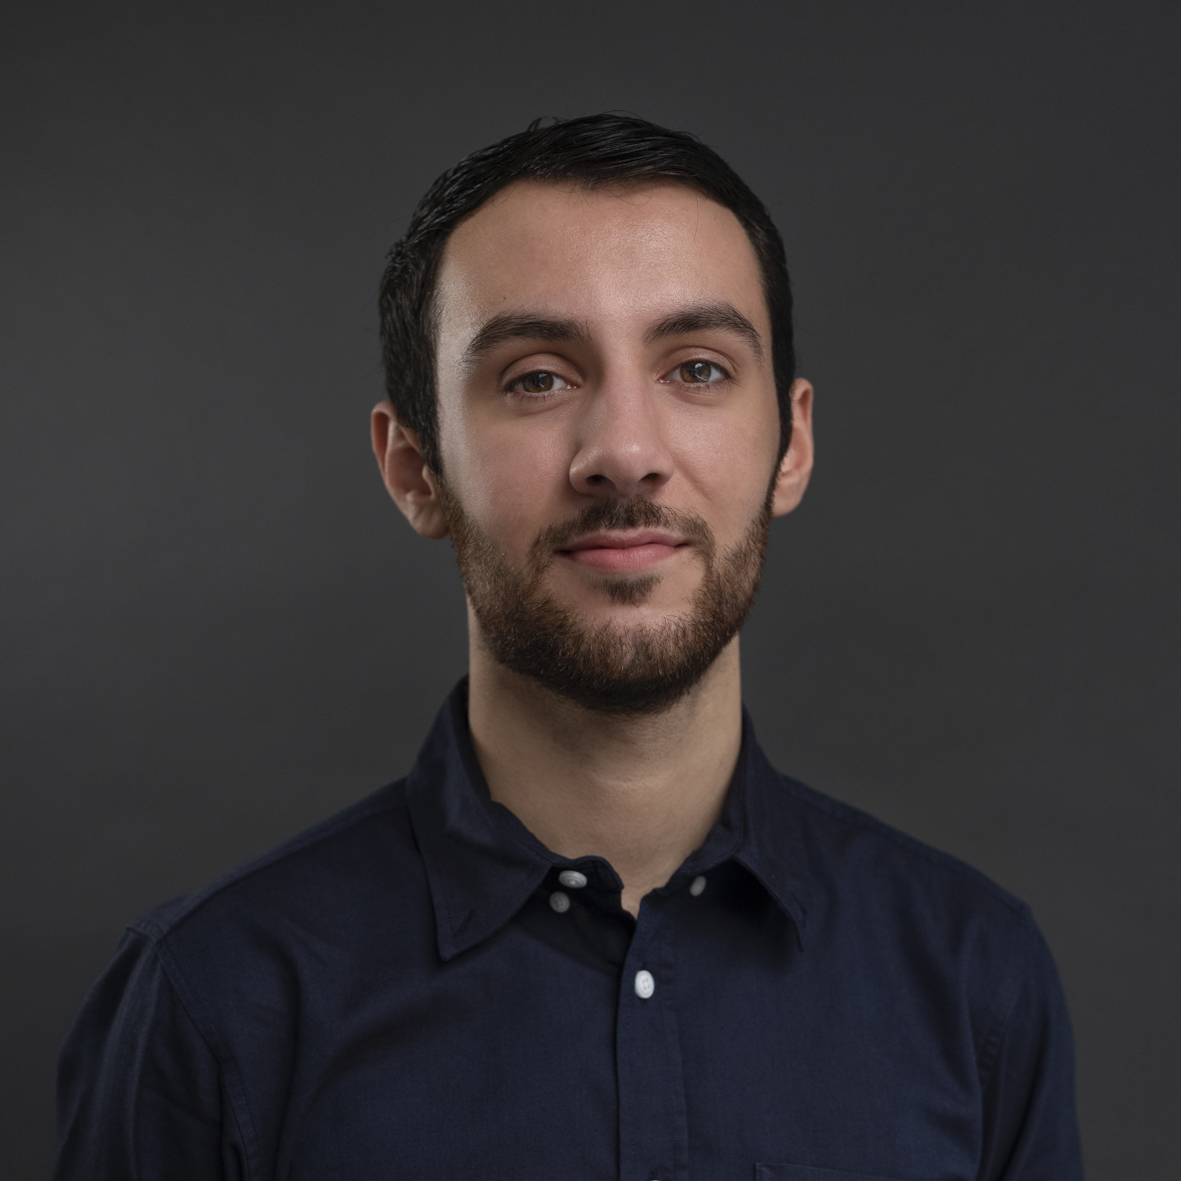 Zak Mahinfar - Office Runner - Zak graduated from the University of Exeter in 2017 with a degree in English Literature. During his degree he completed internships at The Sunday Times and other newspapers, as well as a short course at the NFTS. Shortly after graduating he interned with MBA Literary & Script Agents assisting Diana Tyler before joining the team at Alan Brodie Representation as Office Manager in early 2018.